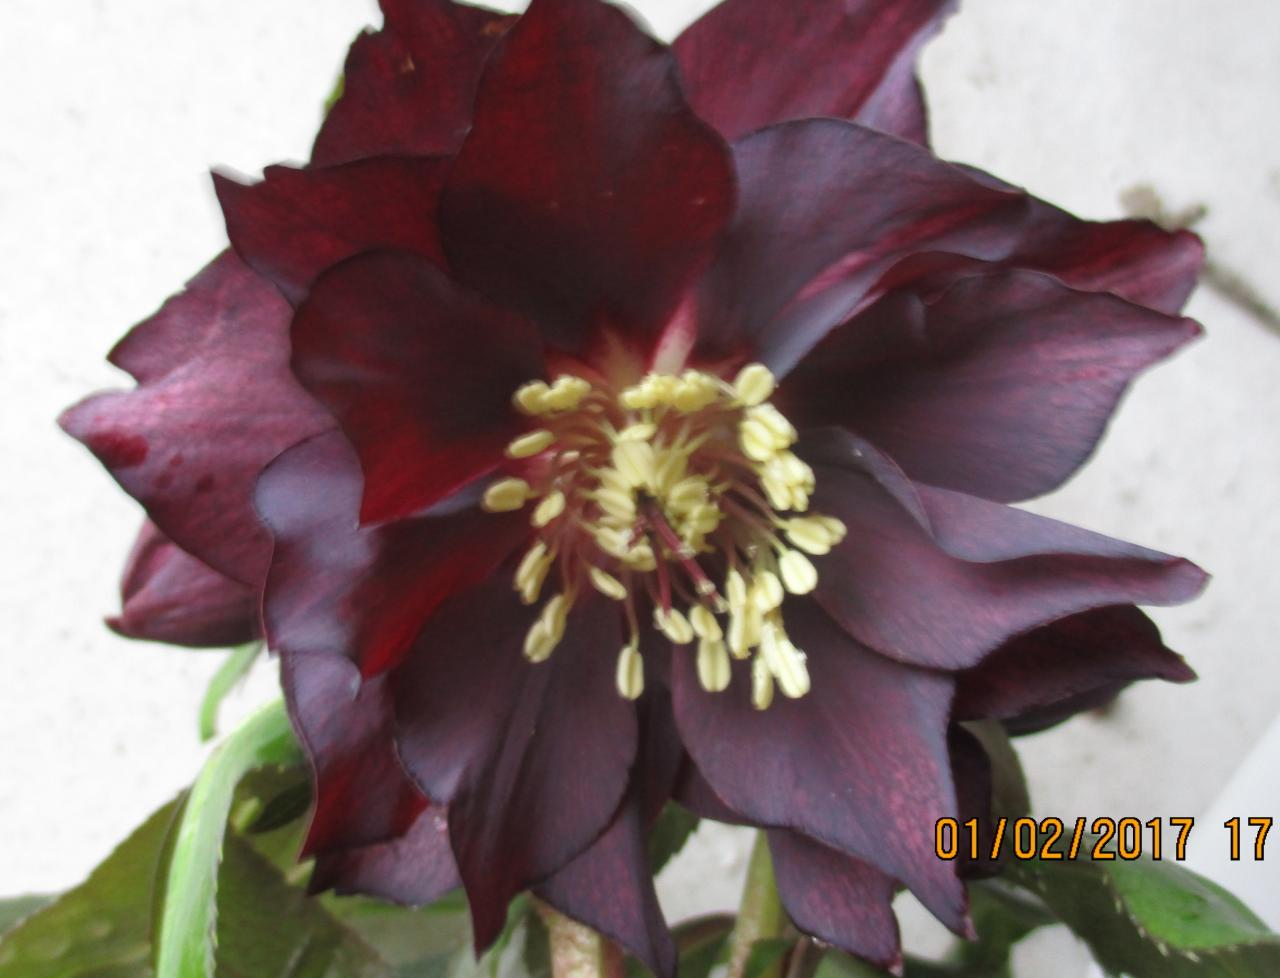 Helleborus orientalis 'Double Black' Wilgenbroek Selection - Copie